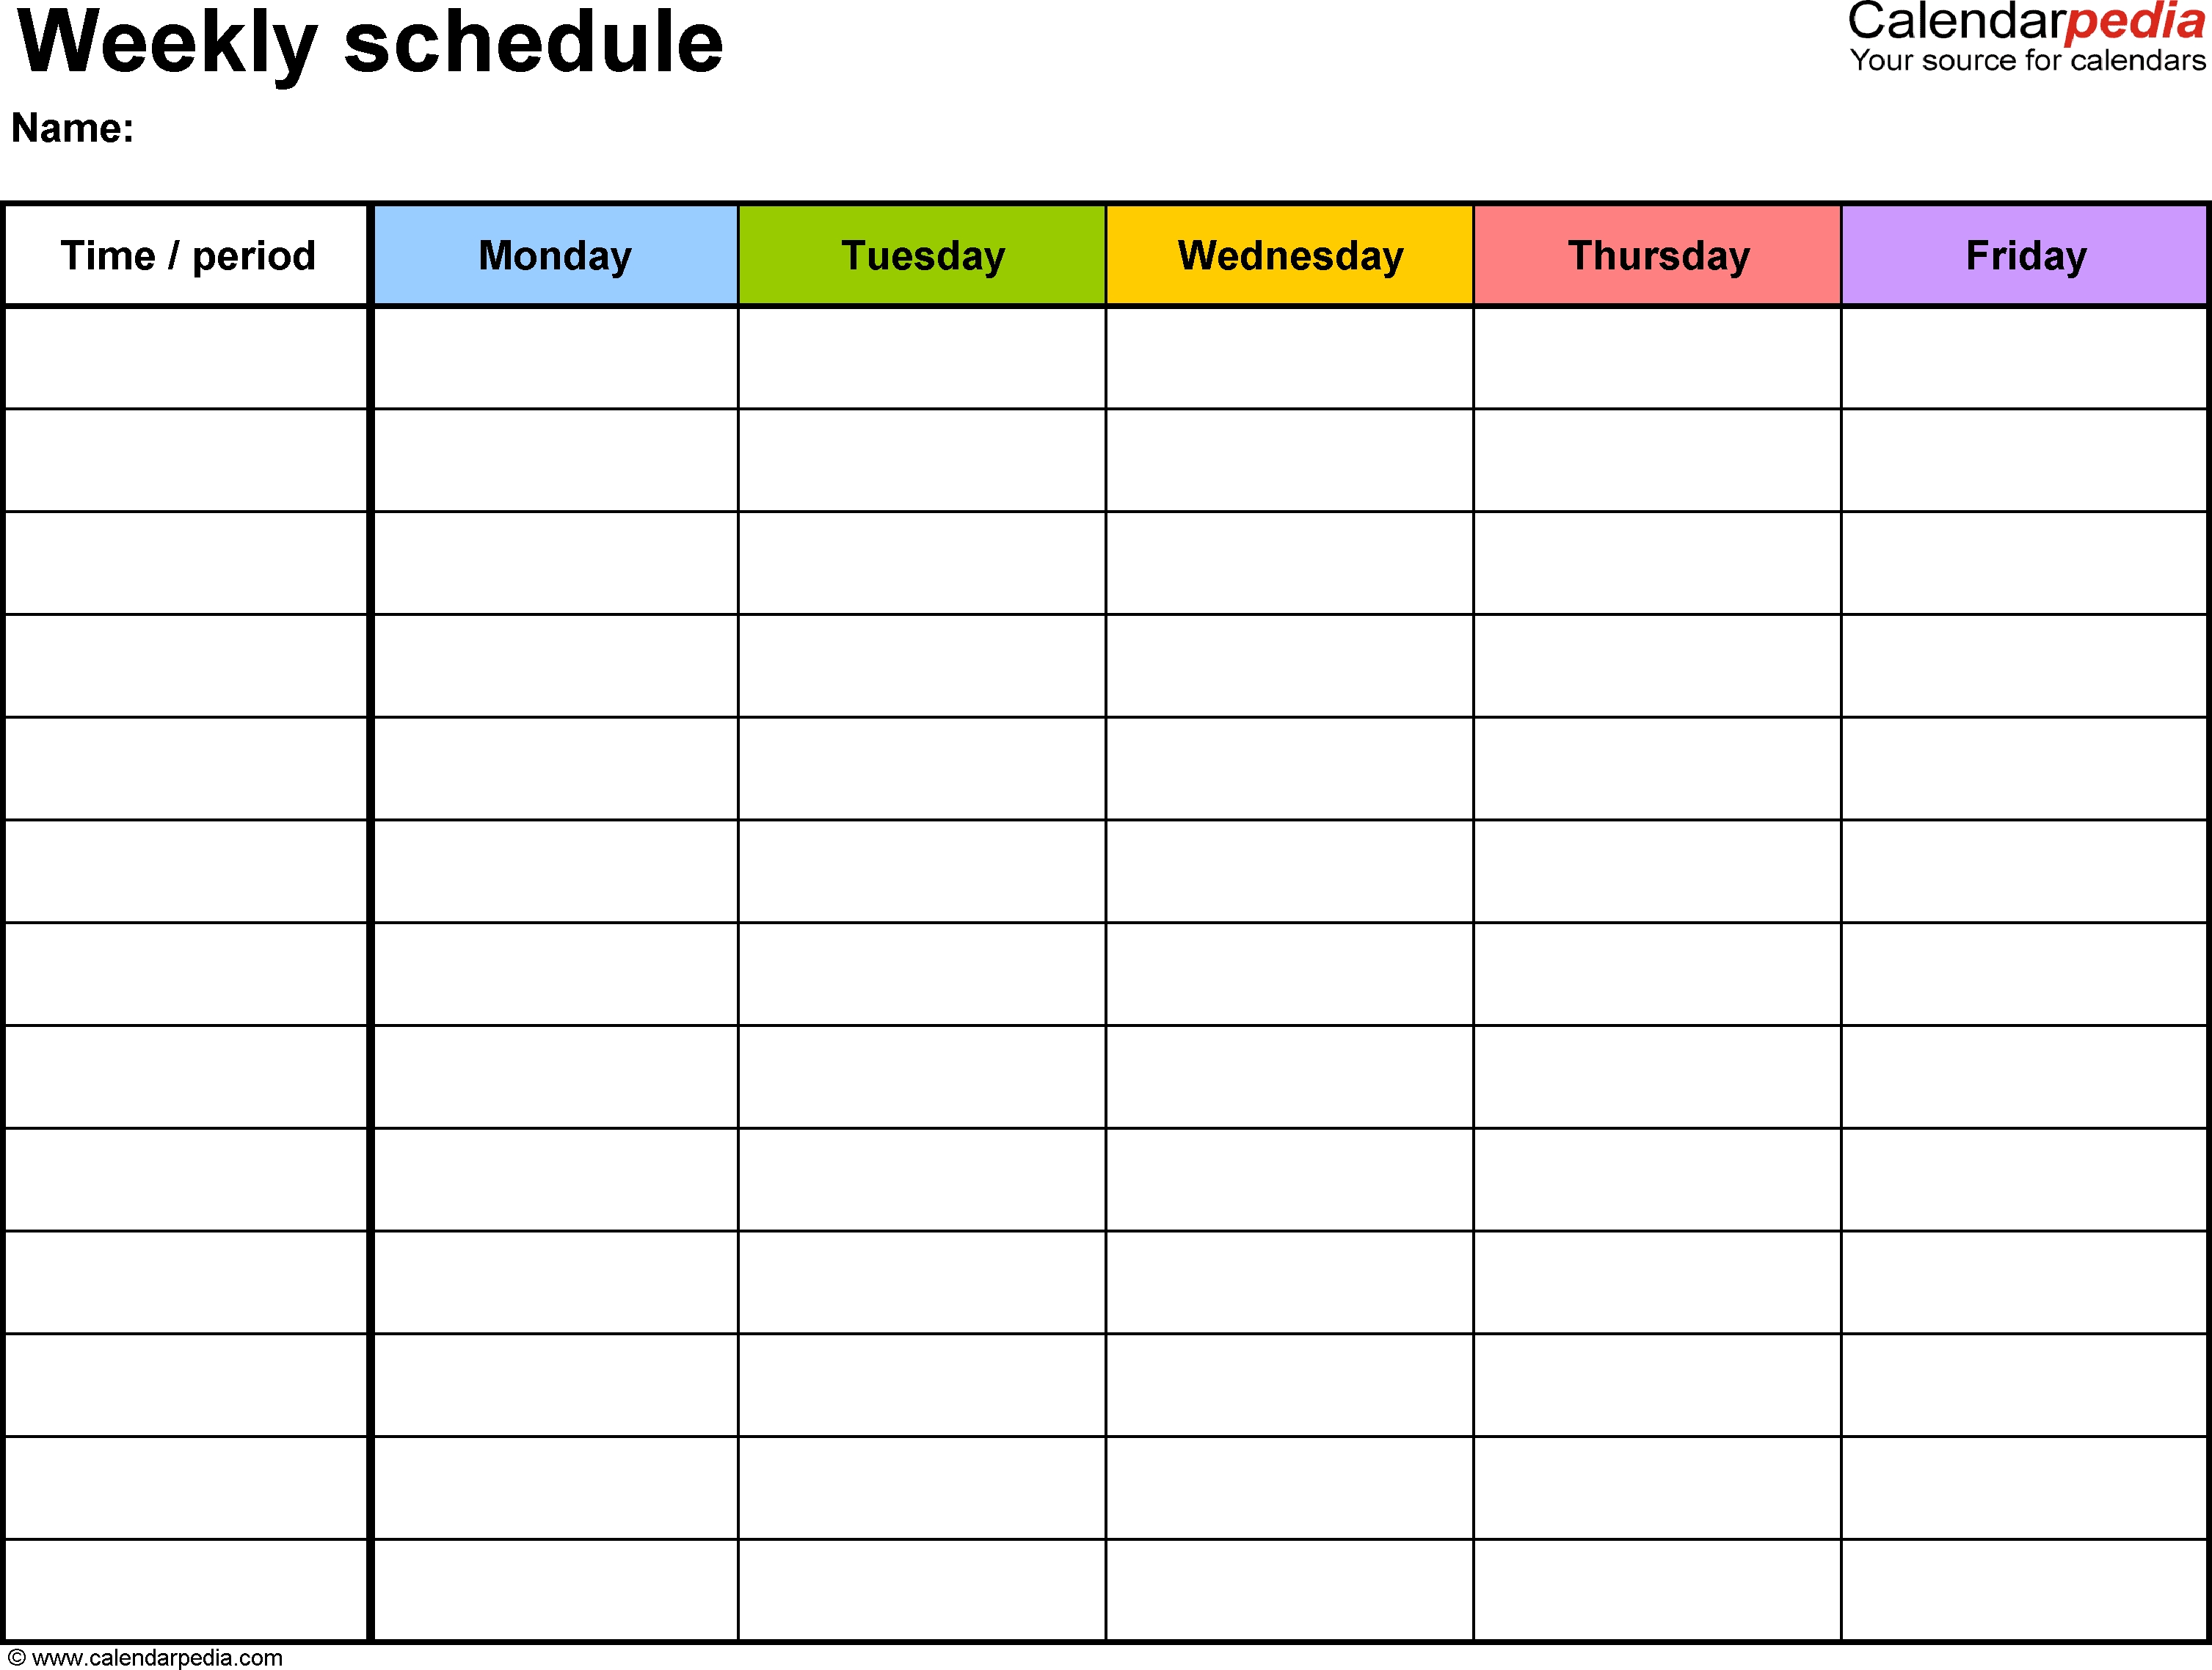 Free Weekly Schedule Templates For Word - 18 Templates  Blank Week Calender With Times